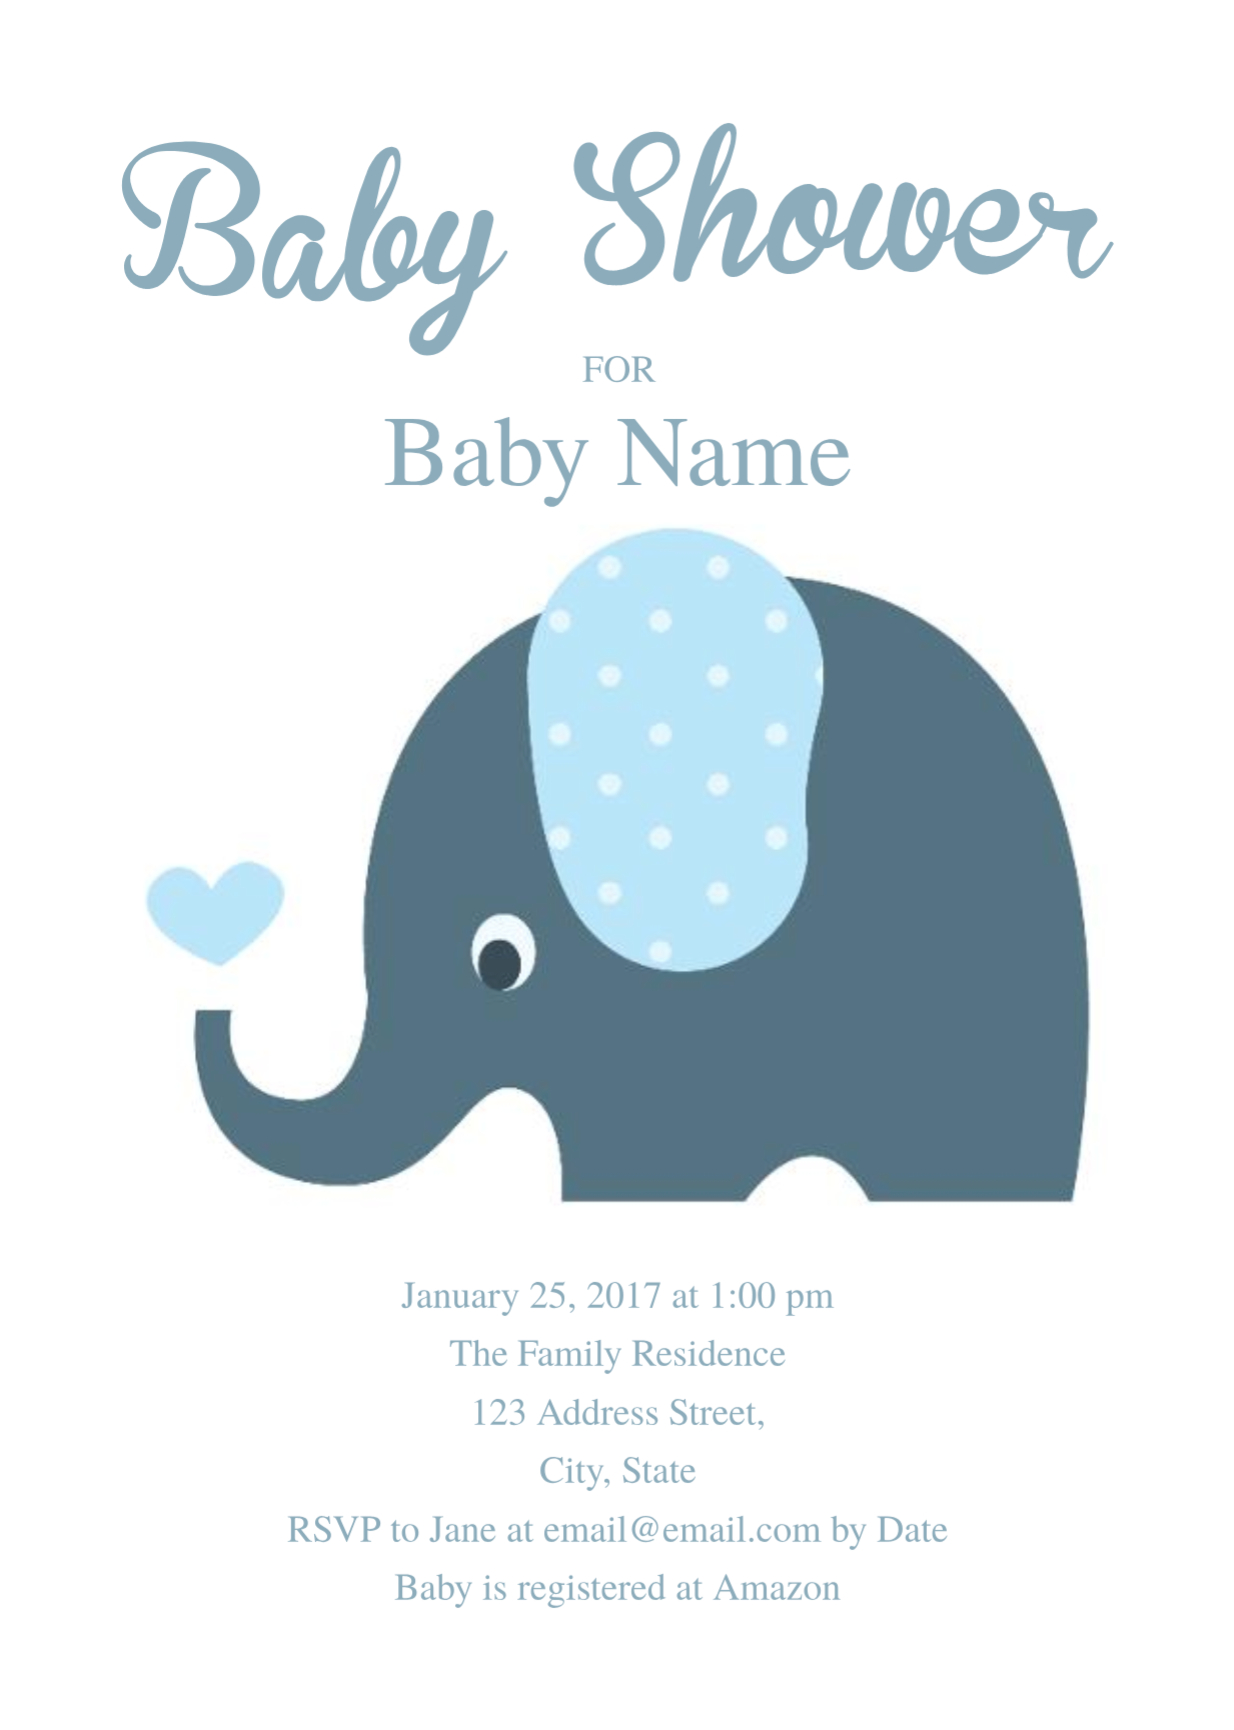 Cute Elephant Baby Shower Invitation Template   Free Invitation - Free Printable Baby Shower Invitations Templates For Boys